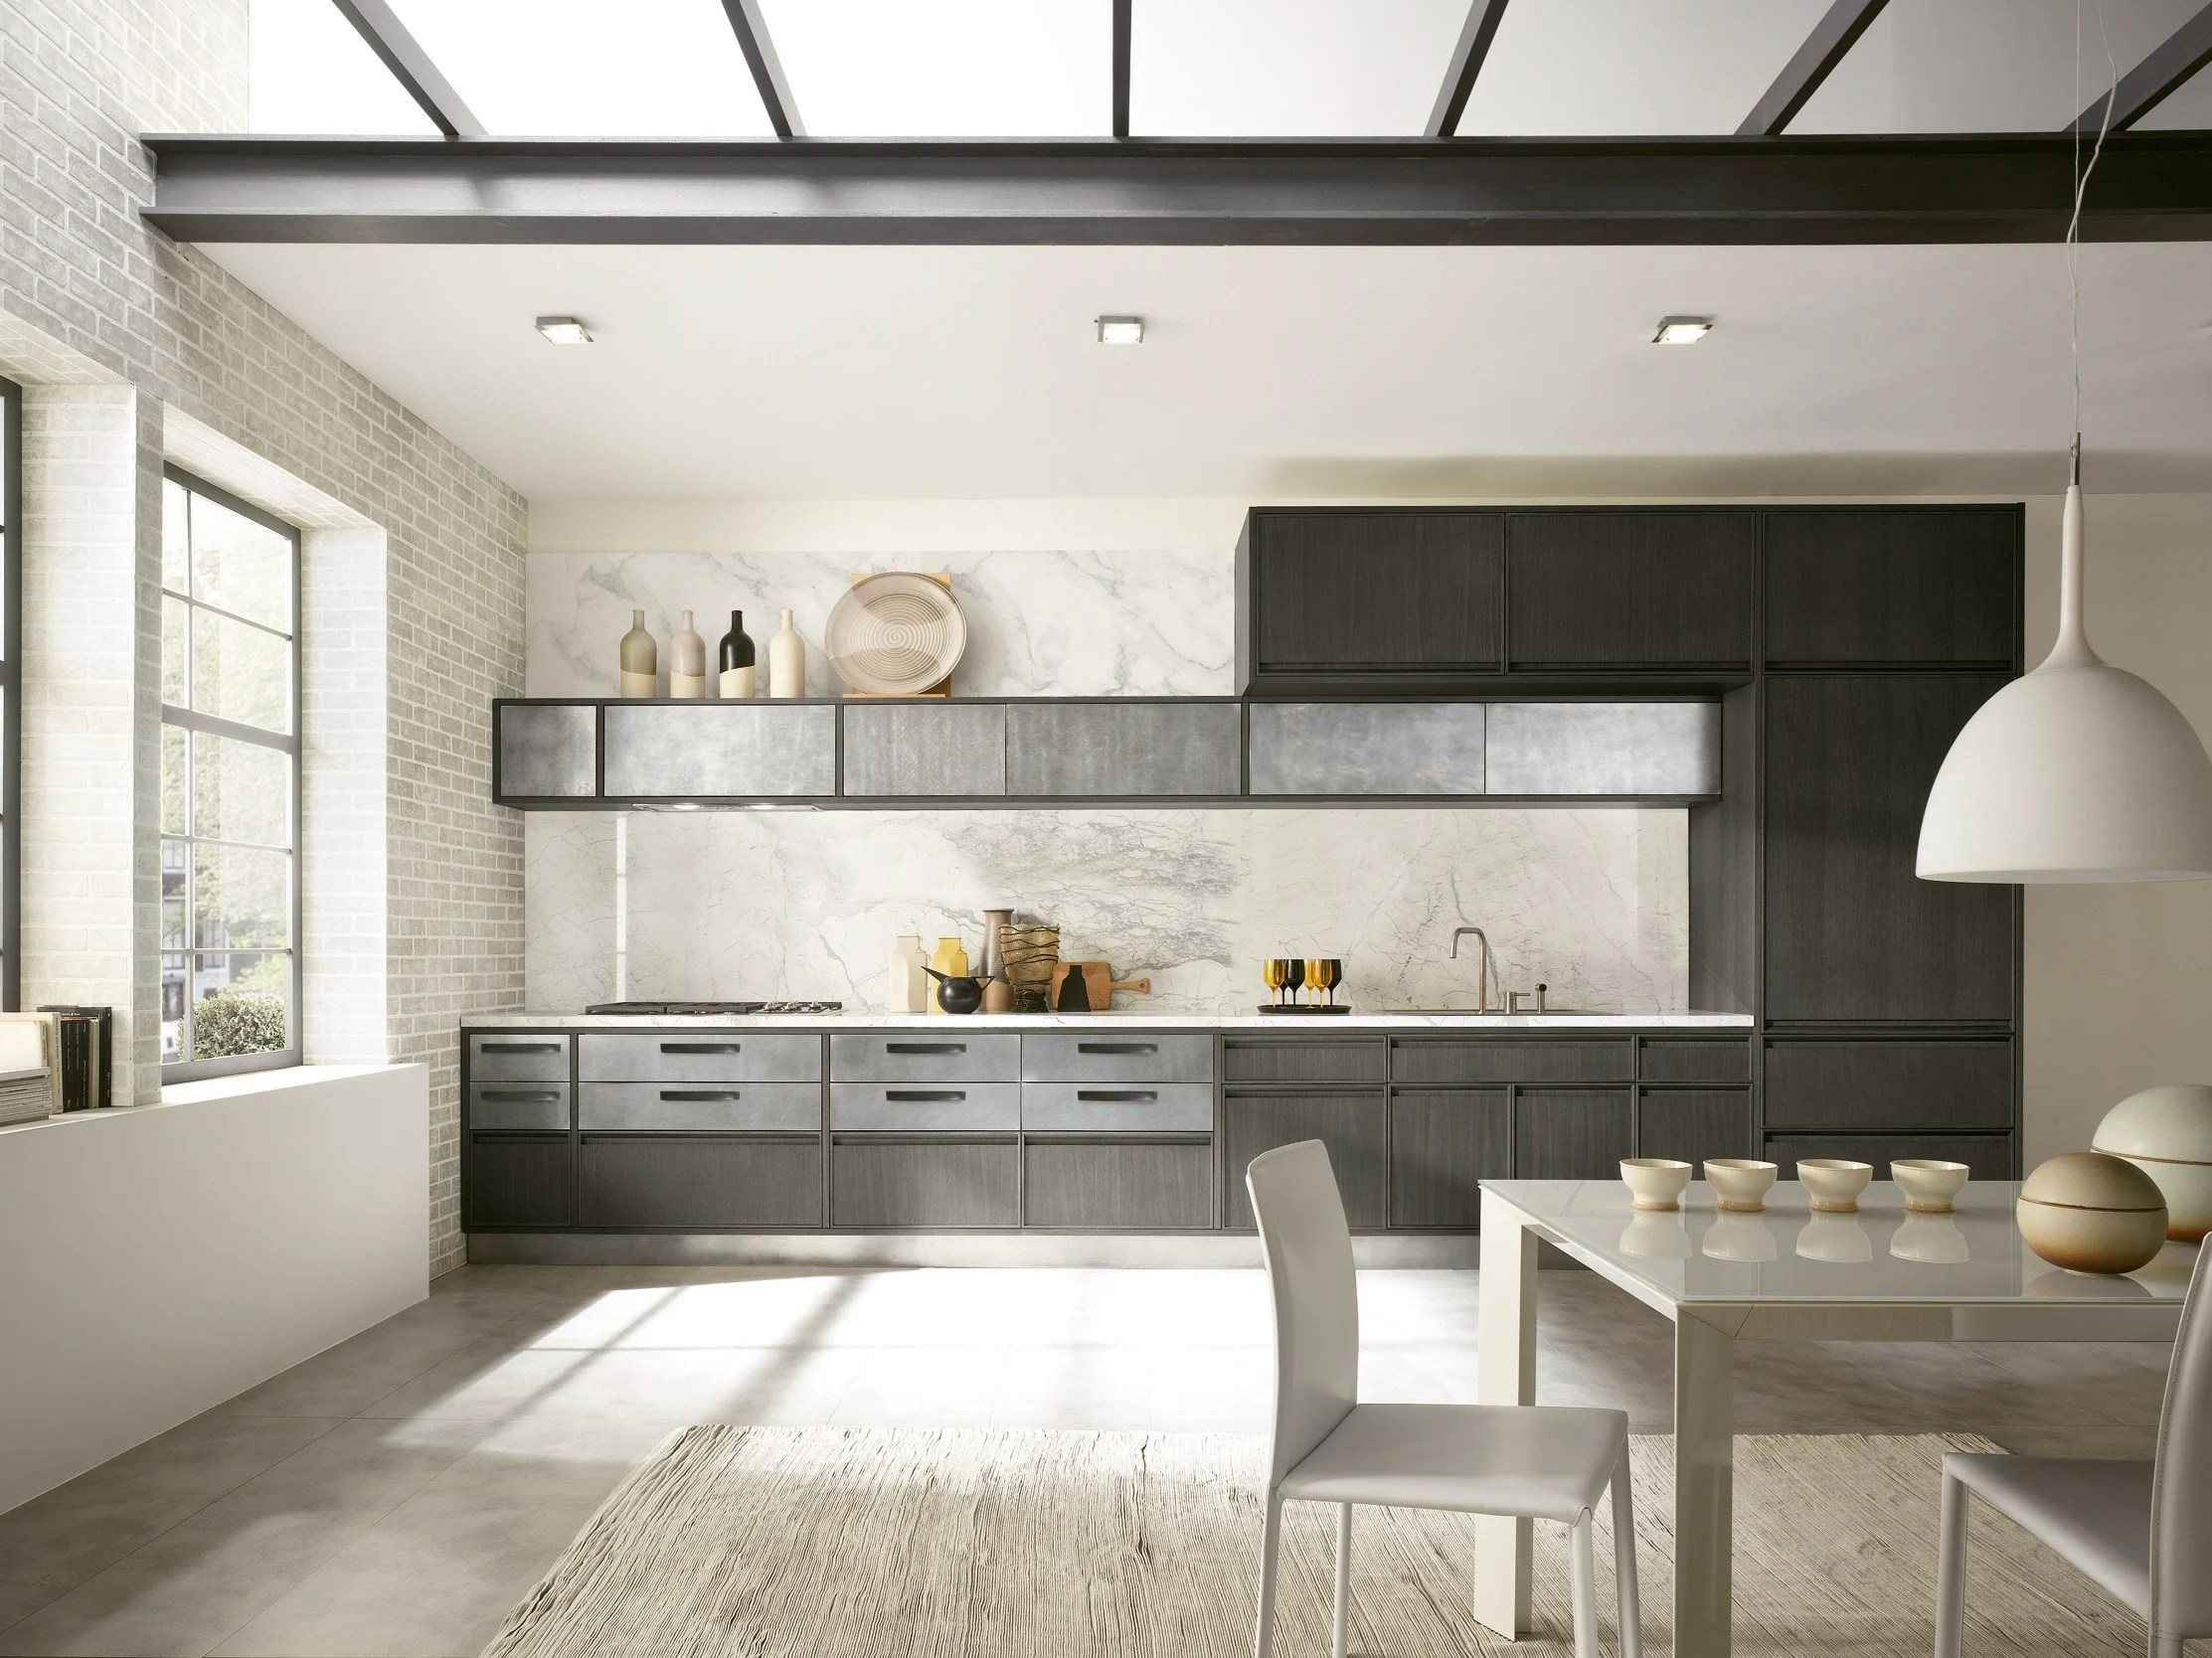 Nobilia Flash Kitchen Linear Kitchen With Integrated Handles Timeline Timeline